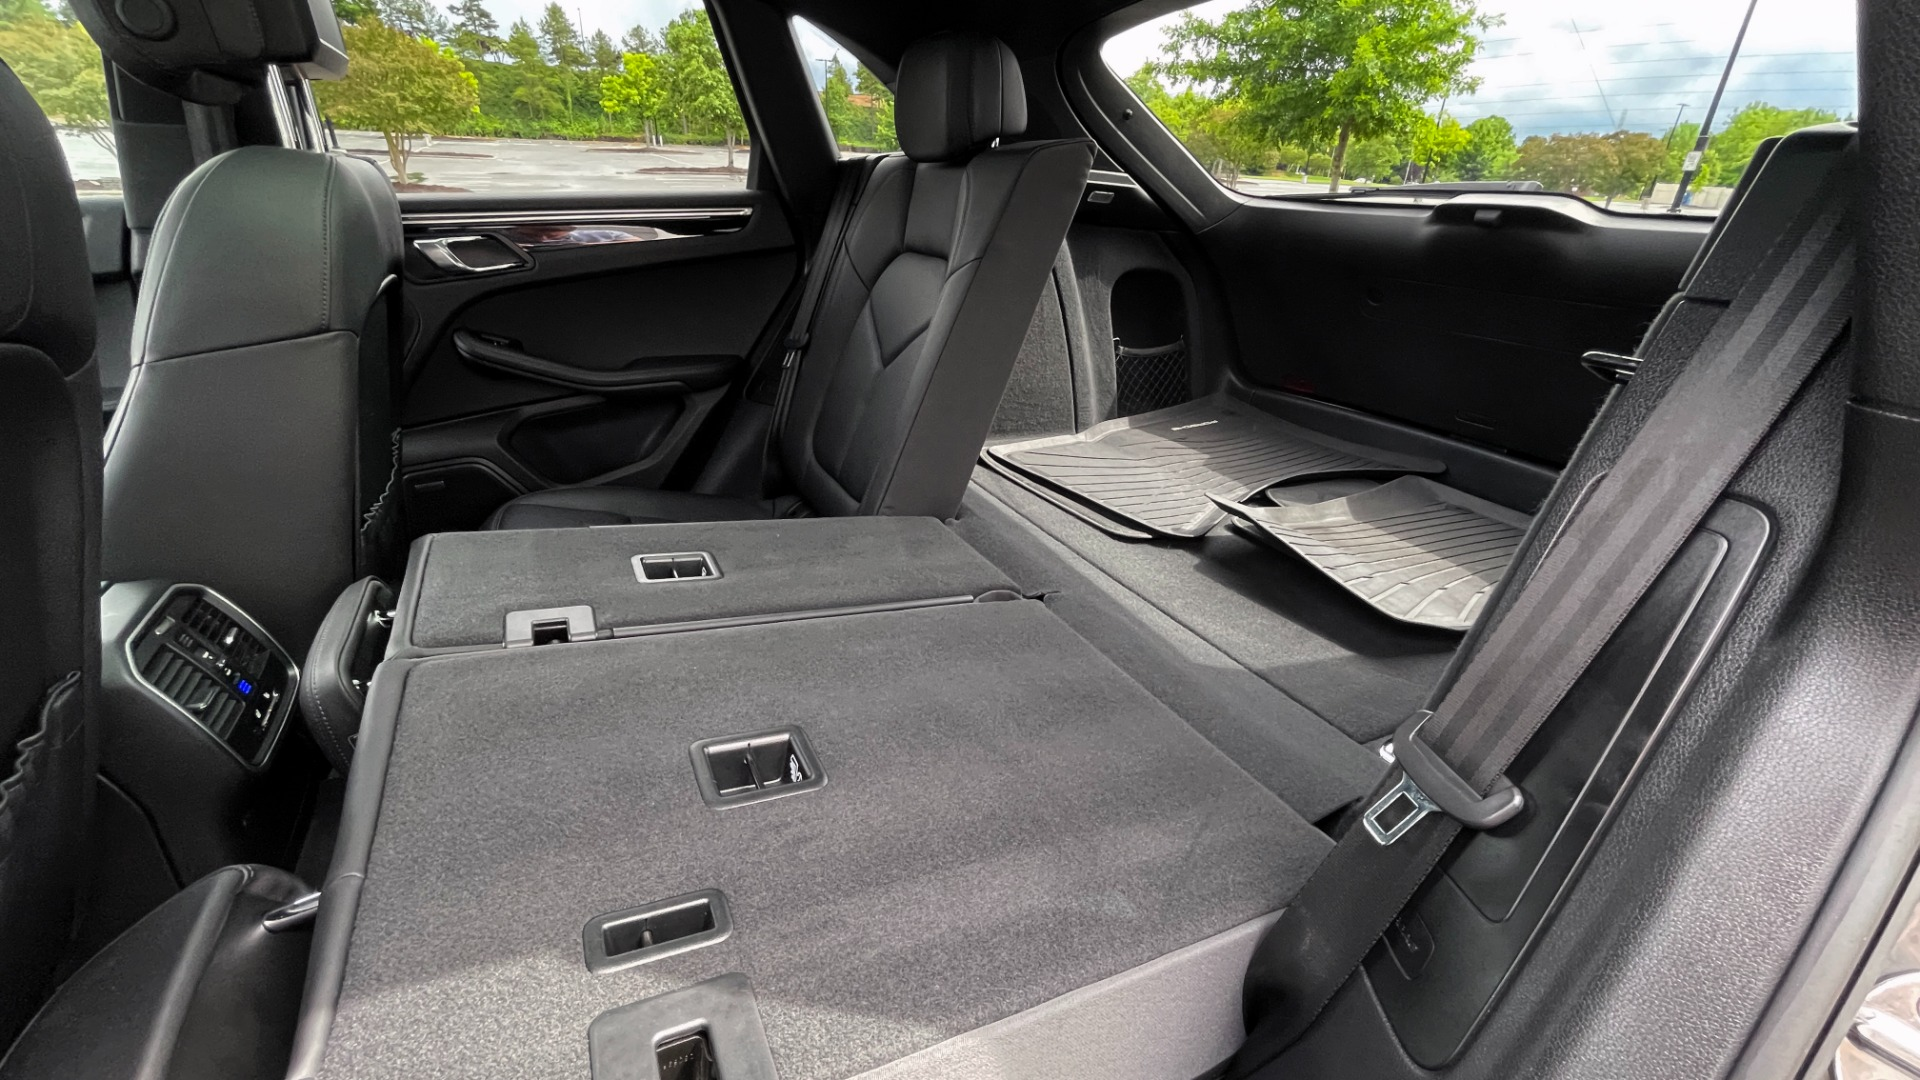 Used 2016 Porsche MACAN S PREMIUM PLUS / AWD / NAV / BOSE / SUNROOF / LCA / PARK ASST / INFOTAINMEN for sale $45,256 at Formula Imports in Charlotte NC 28227 64